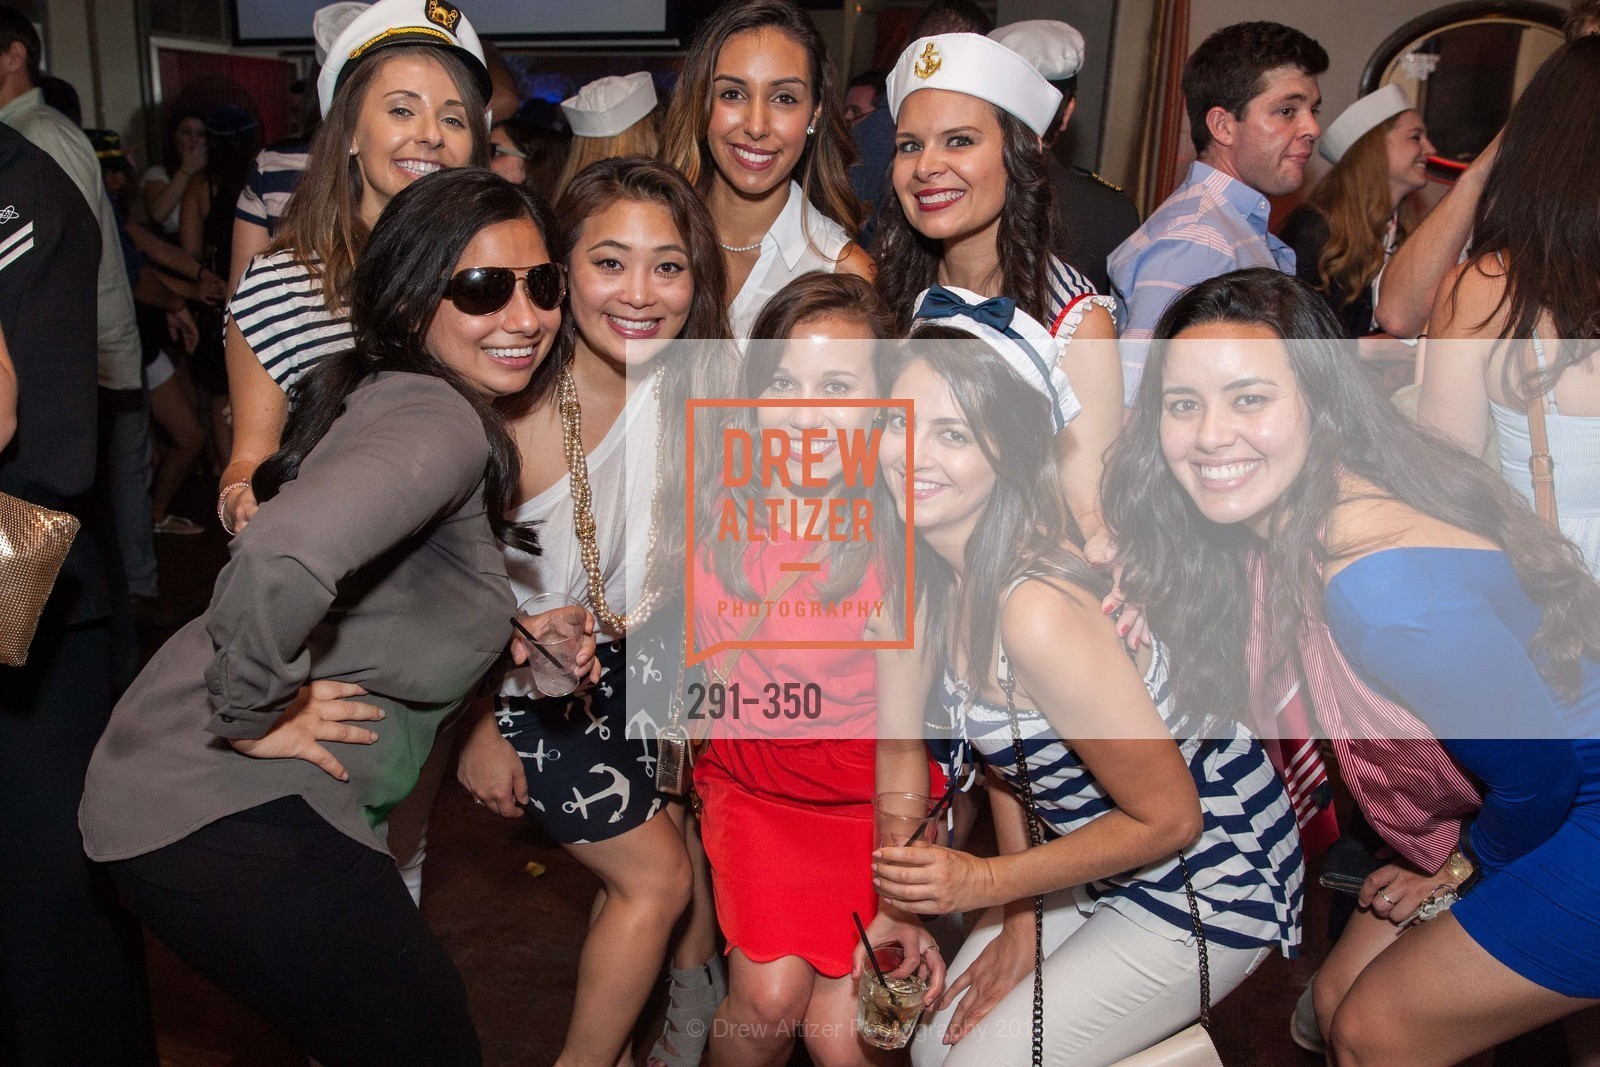 Natalie Bueno, Olga Levin, Kelcie Lee, Cassandra Rica, Alex Ruff, Becky Daugherty, Spinsters of San Francisco Presents: Fleet or Flight, Mayes Oyster House. 1233 Polk St, October 9th, 2015,Drew Altizer, Drew Altizer Photography, full-service agency, private events, San Francisco photographer, photographer california